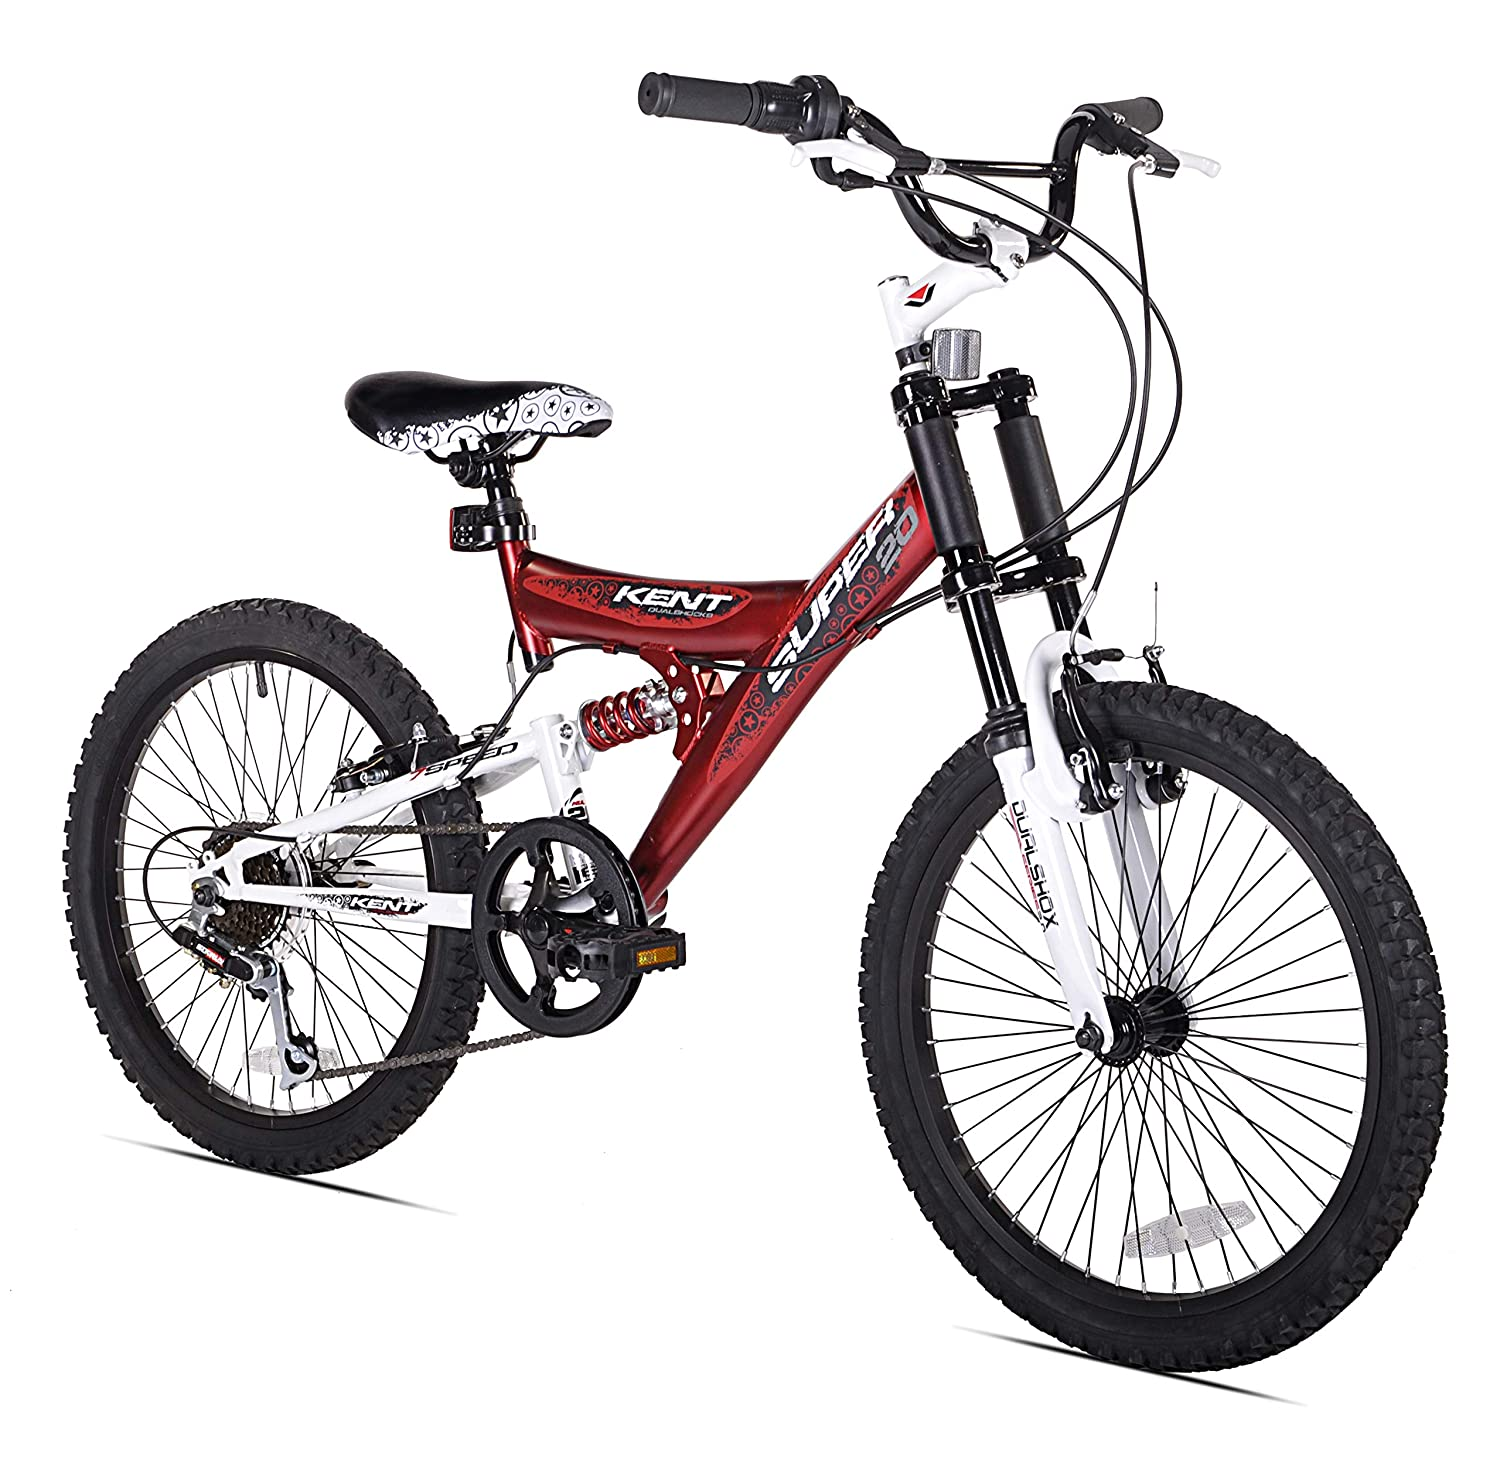 0e81786f8ec Amazon.com : Kent Super 20 Boys Bike, 20-Inch : Childrens Bicycles : Sports  & Outdoors